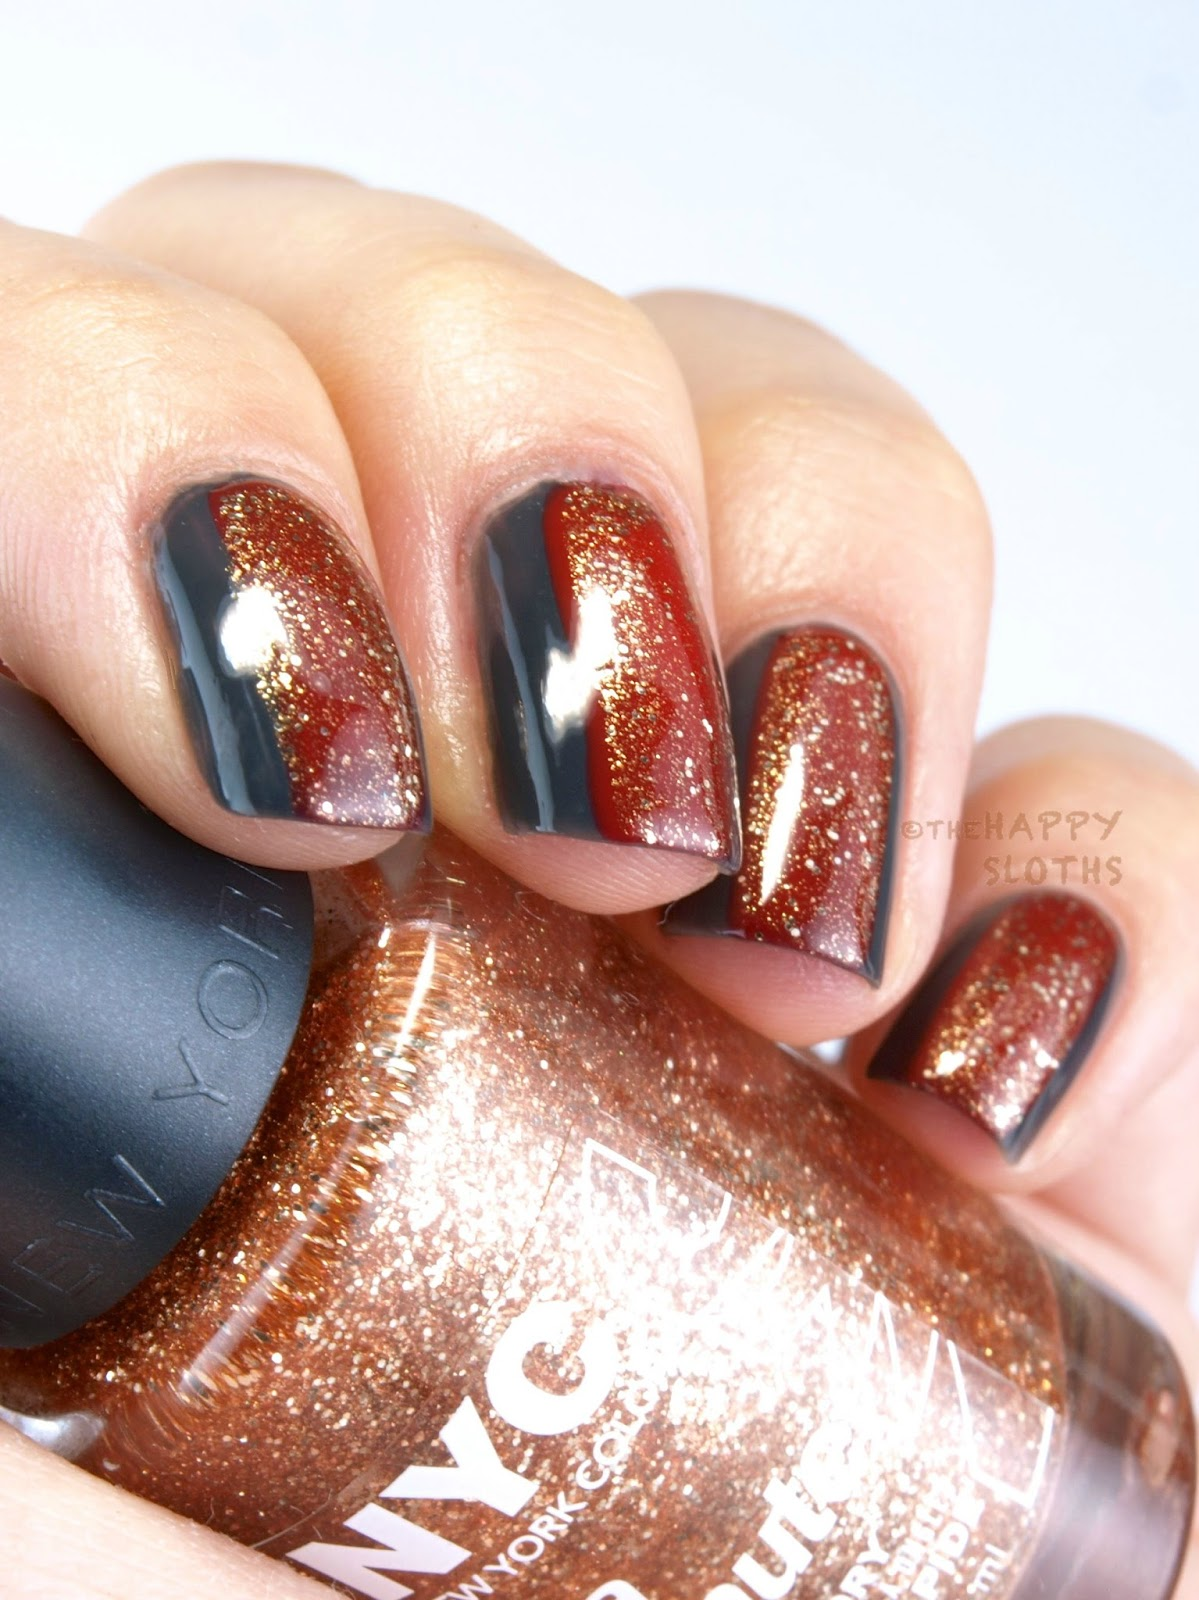 NYC New York Color Fall 2015 Runway Inspired Manicure: #NYCBeautyPro ...